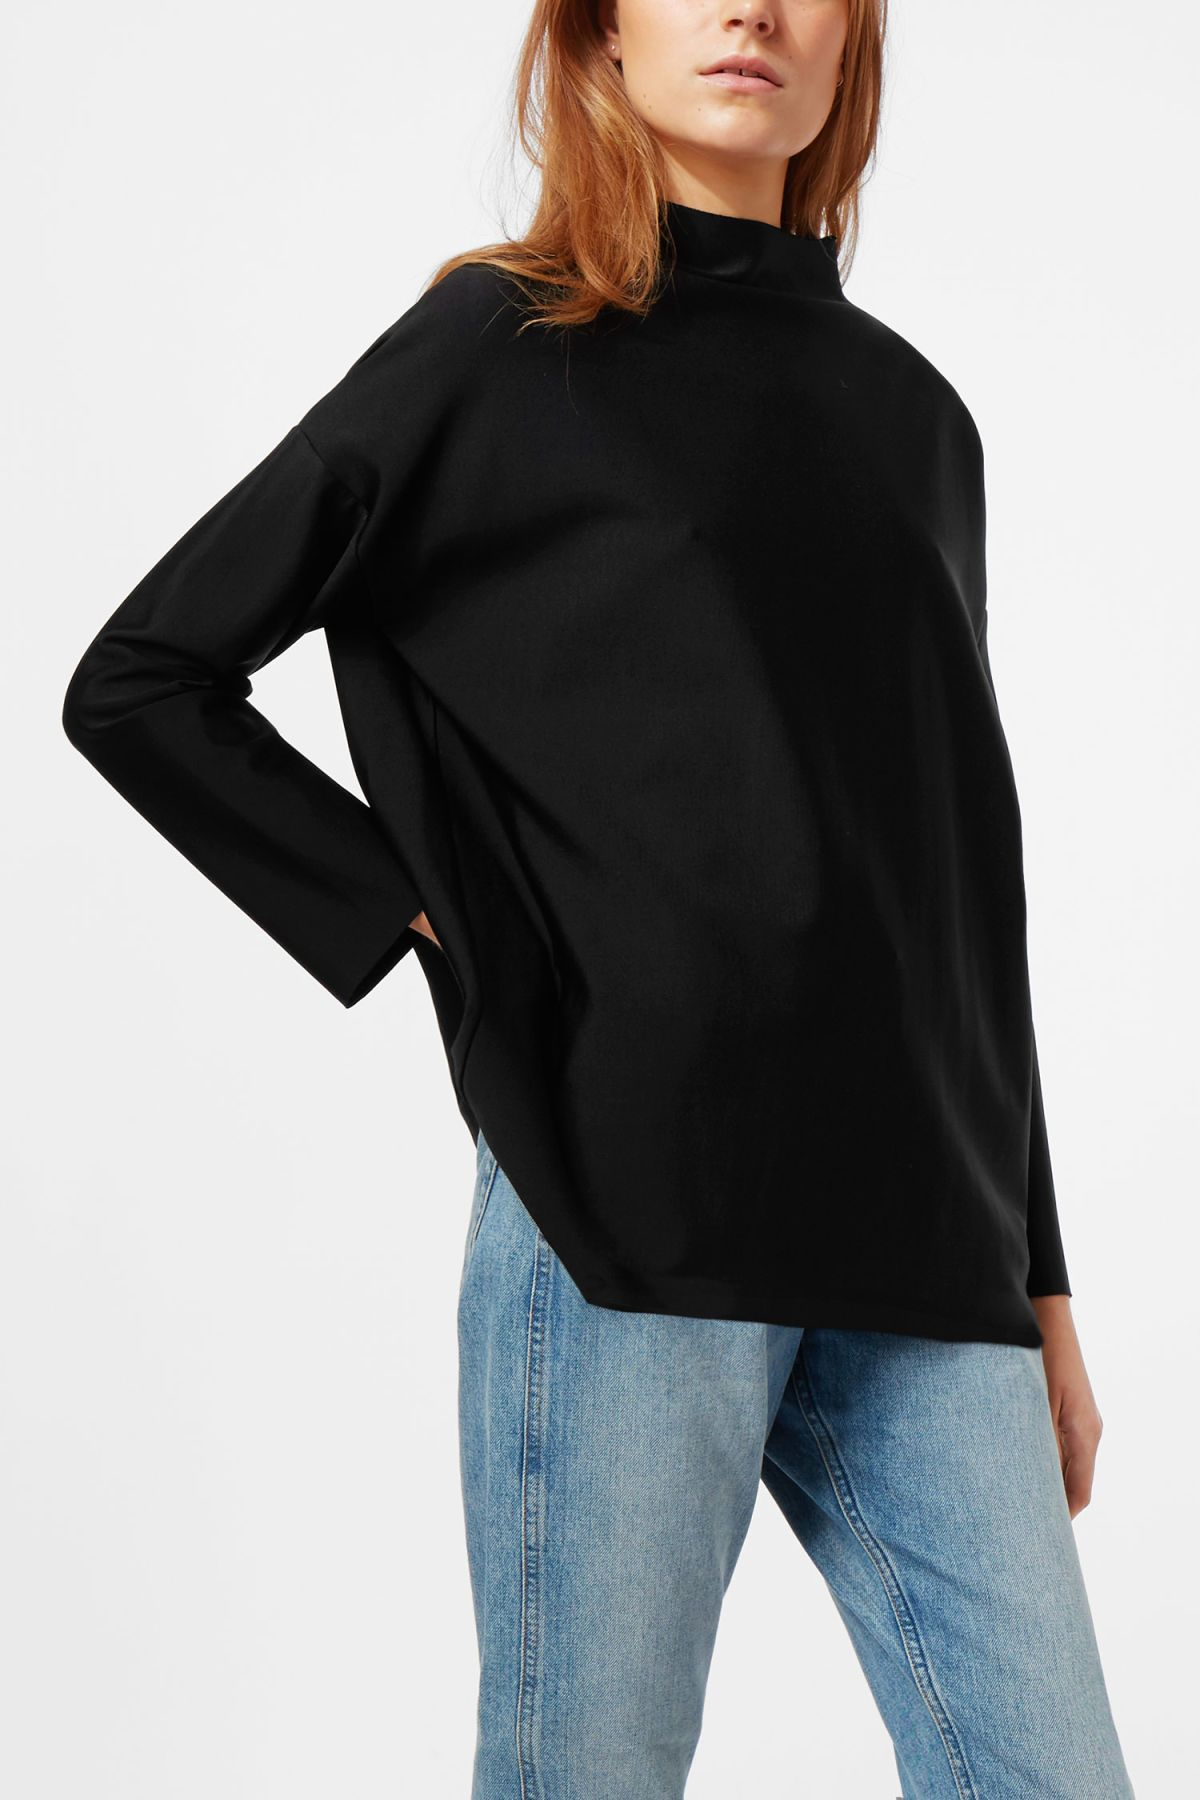 Material The Lux Of With Combines A Feel Shiny Beijing Turtleneck lKFc1J